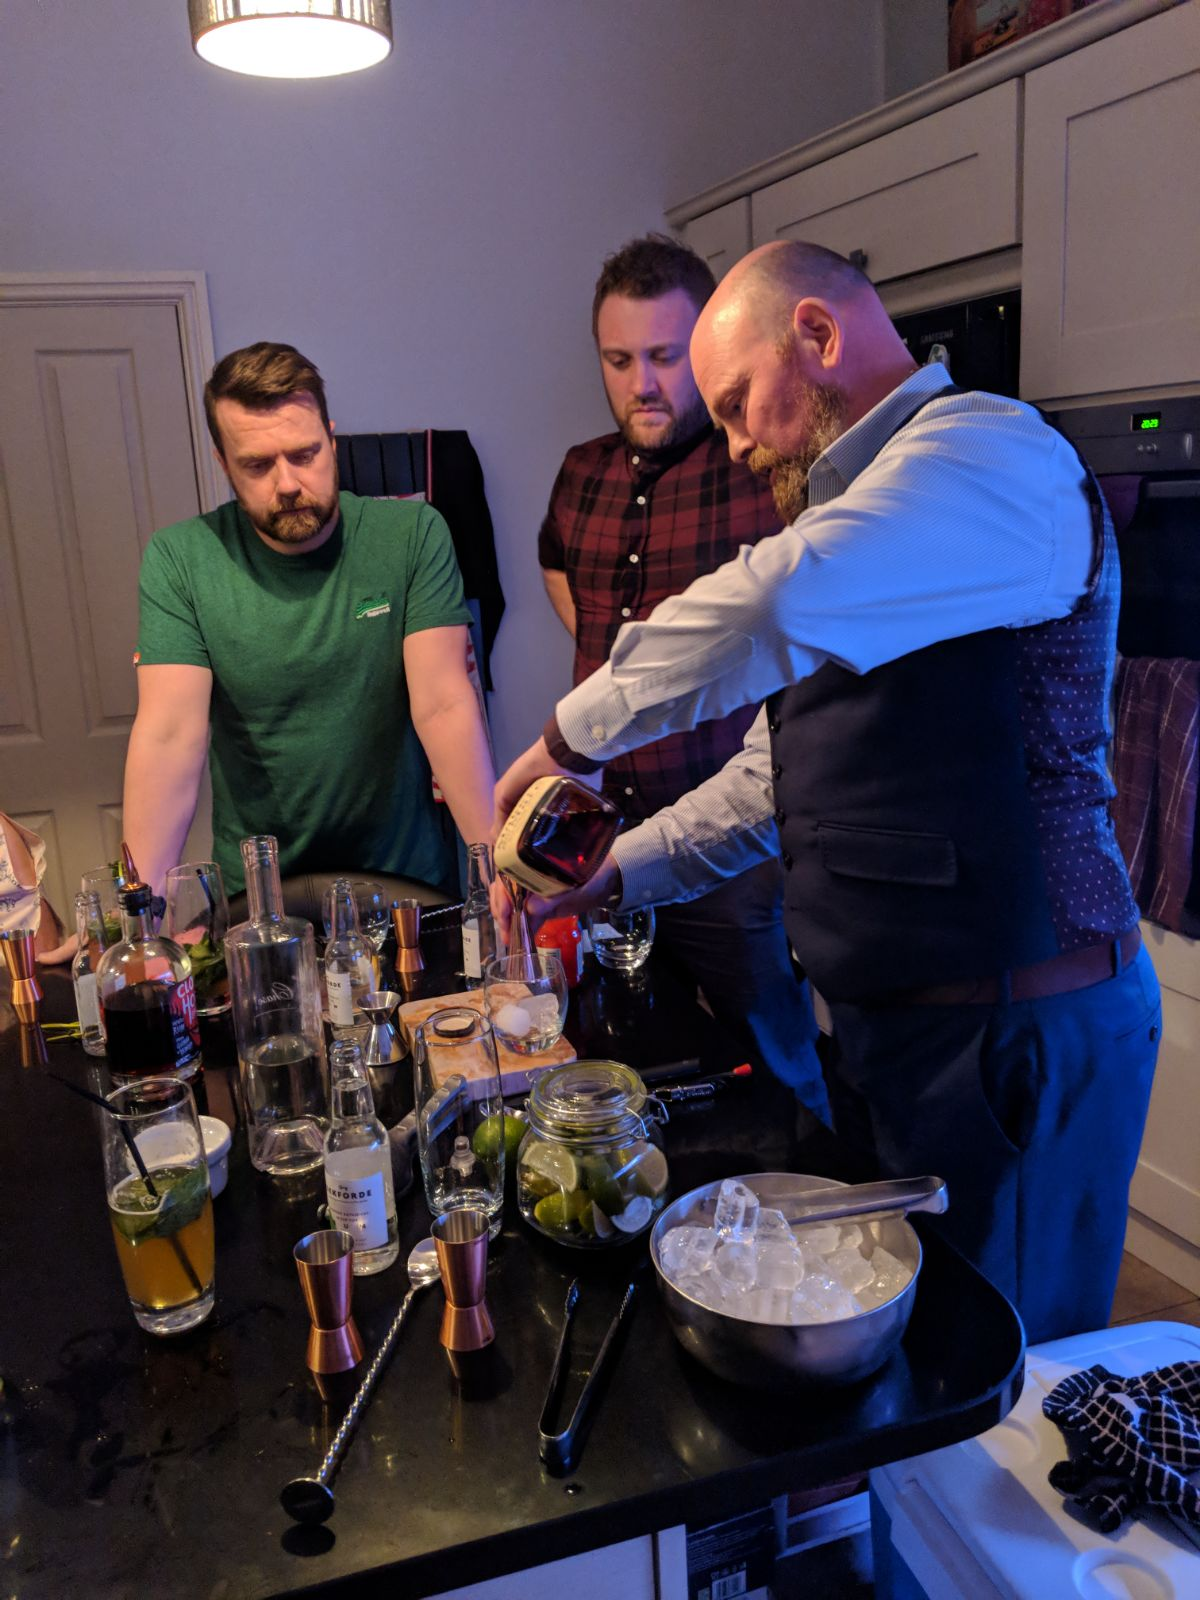 Cocktail Making at Home for a Birthday Party